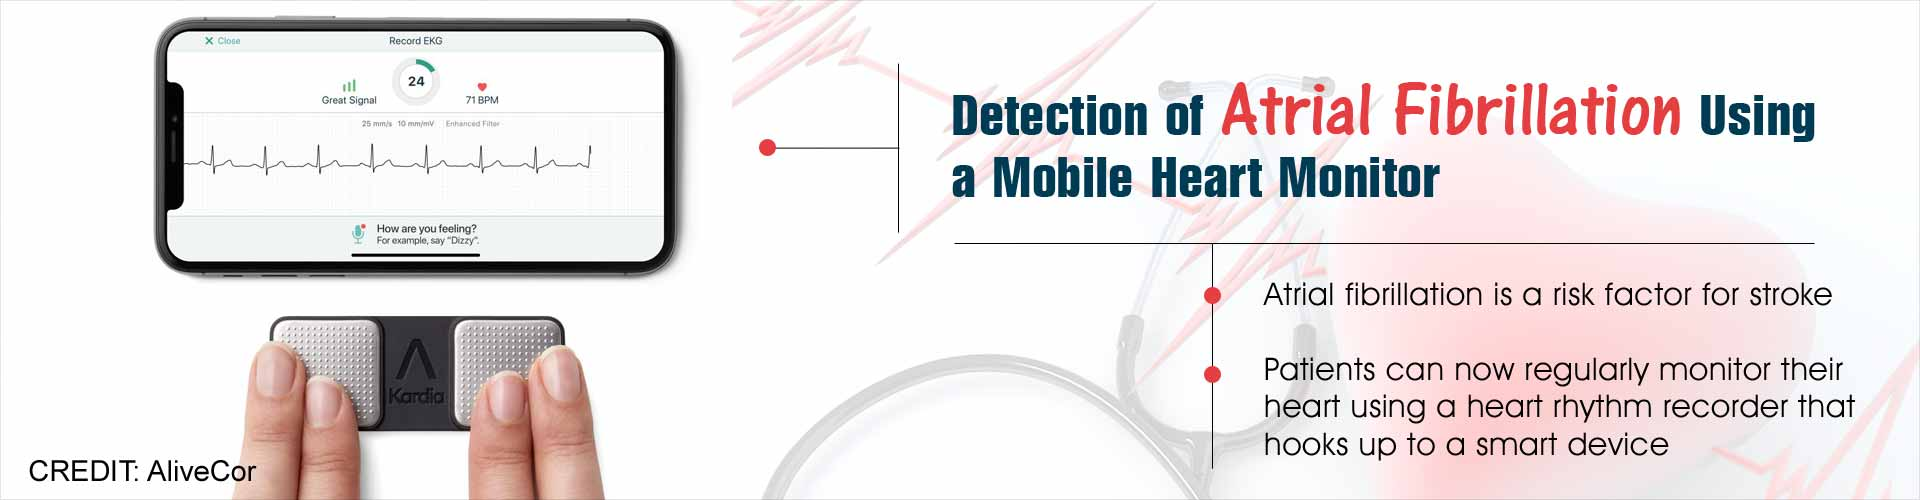 Smartphone Monitoring System Detects Atrial Fibrillation With Excellent Sensitivity